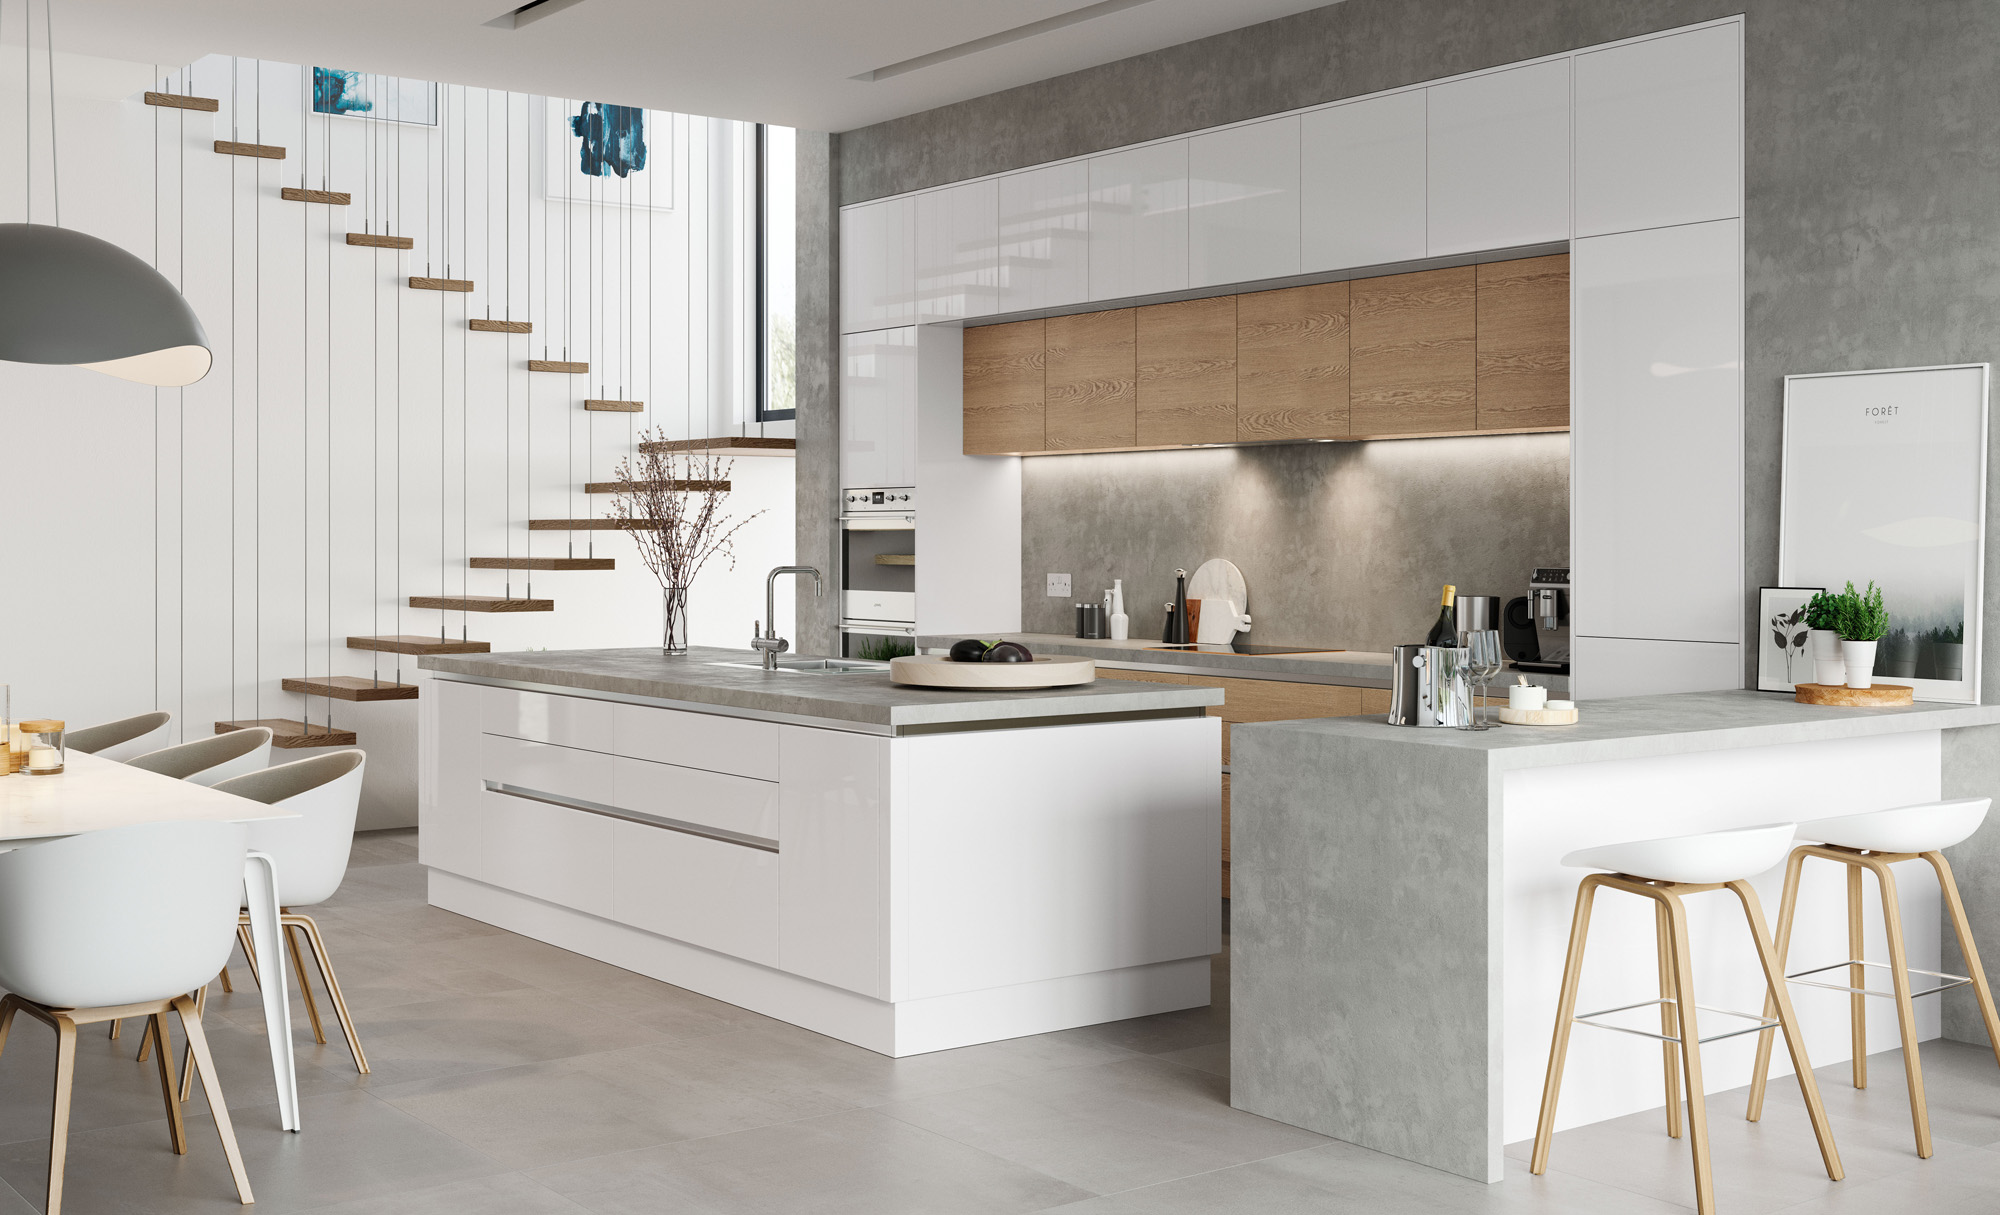 Modern Contemporary Zola White Gloss, Tavola Stained Parched Oak Kitchen - Kitchen Design - Alan Kelly Kitchens - Waterford